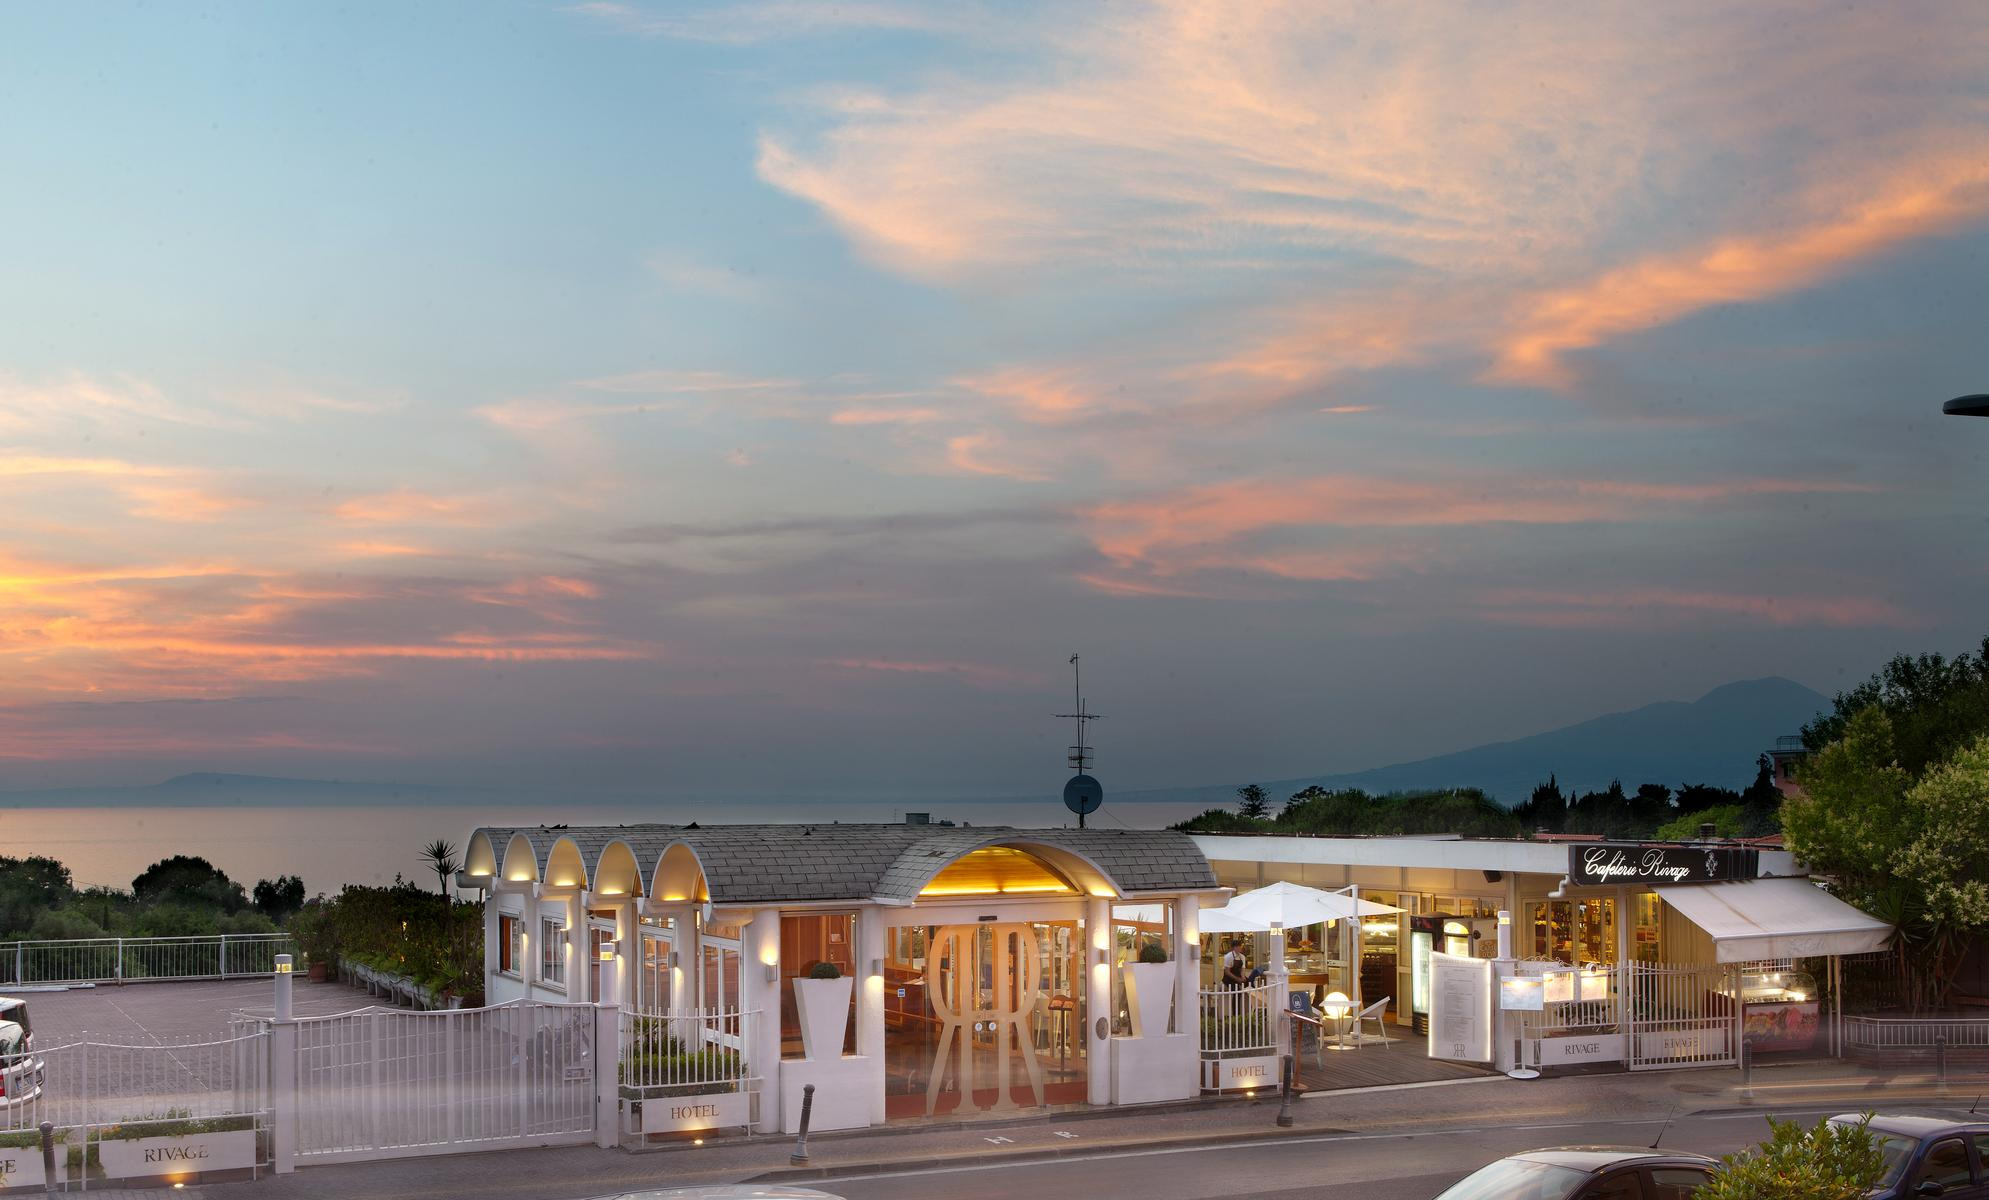 Rivage hotel in sorrento italy holidays from 302pp - Hotel in sorrento italy with swimming pool ...